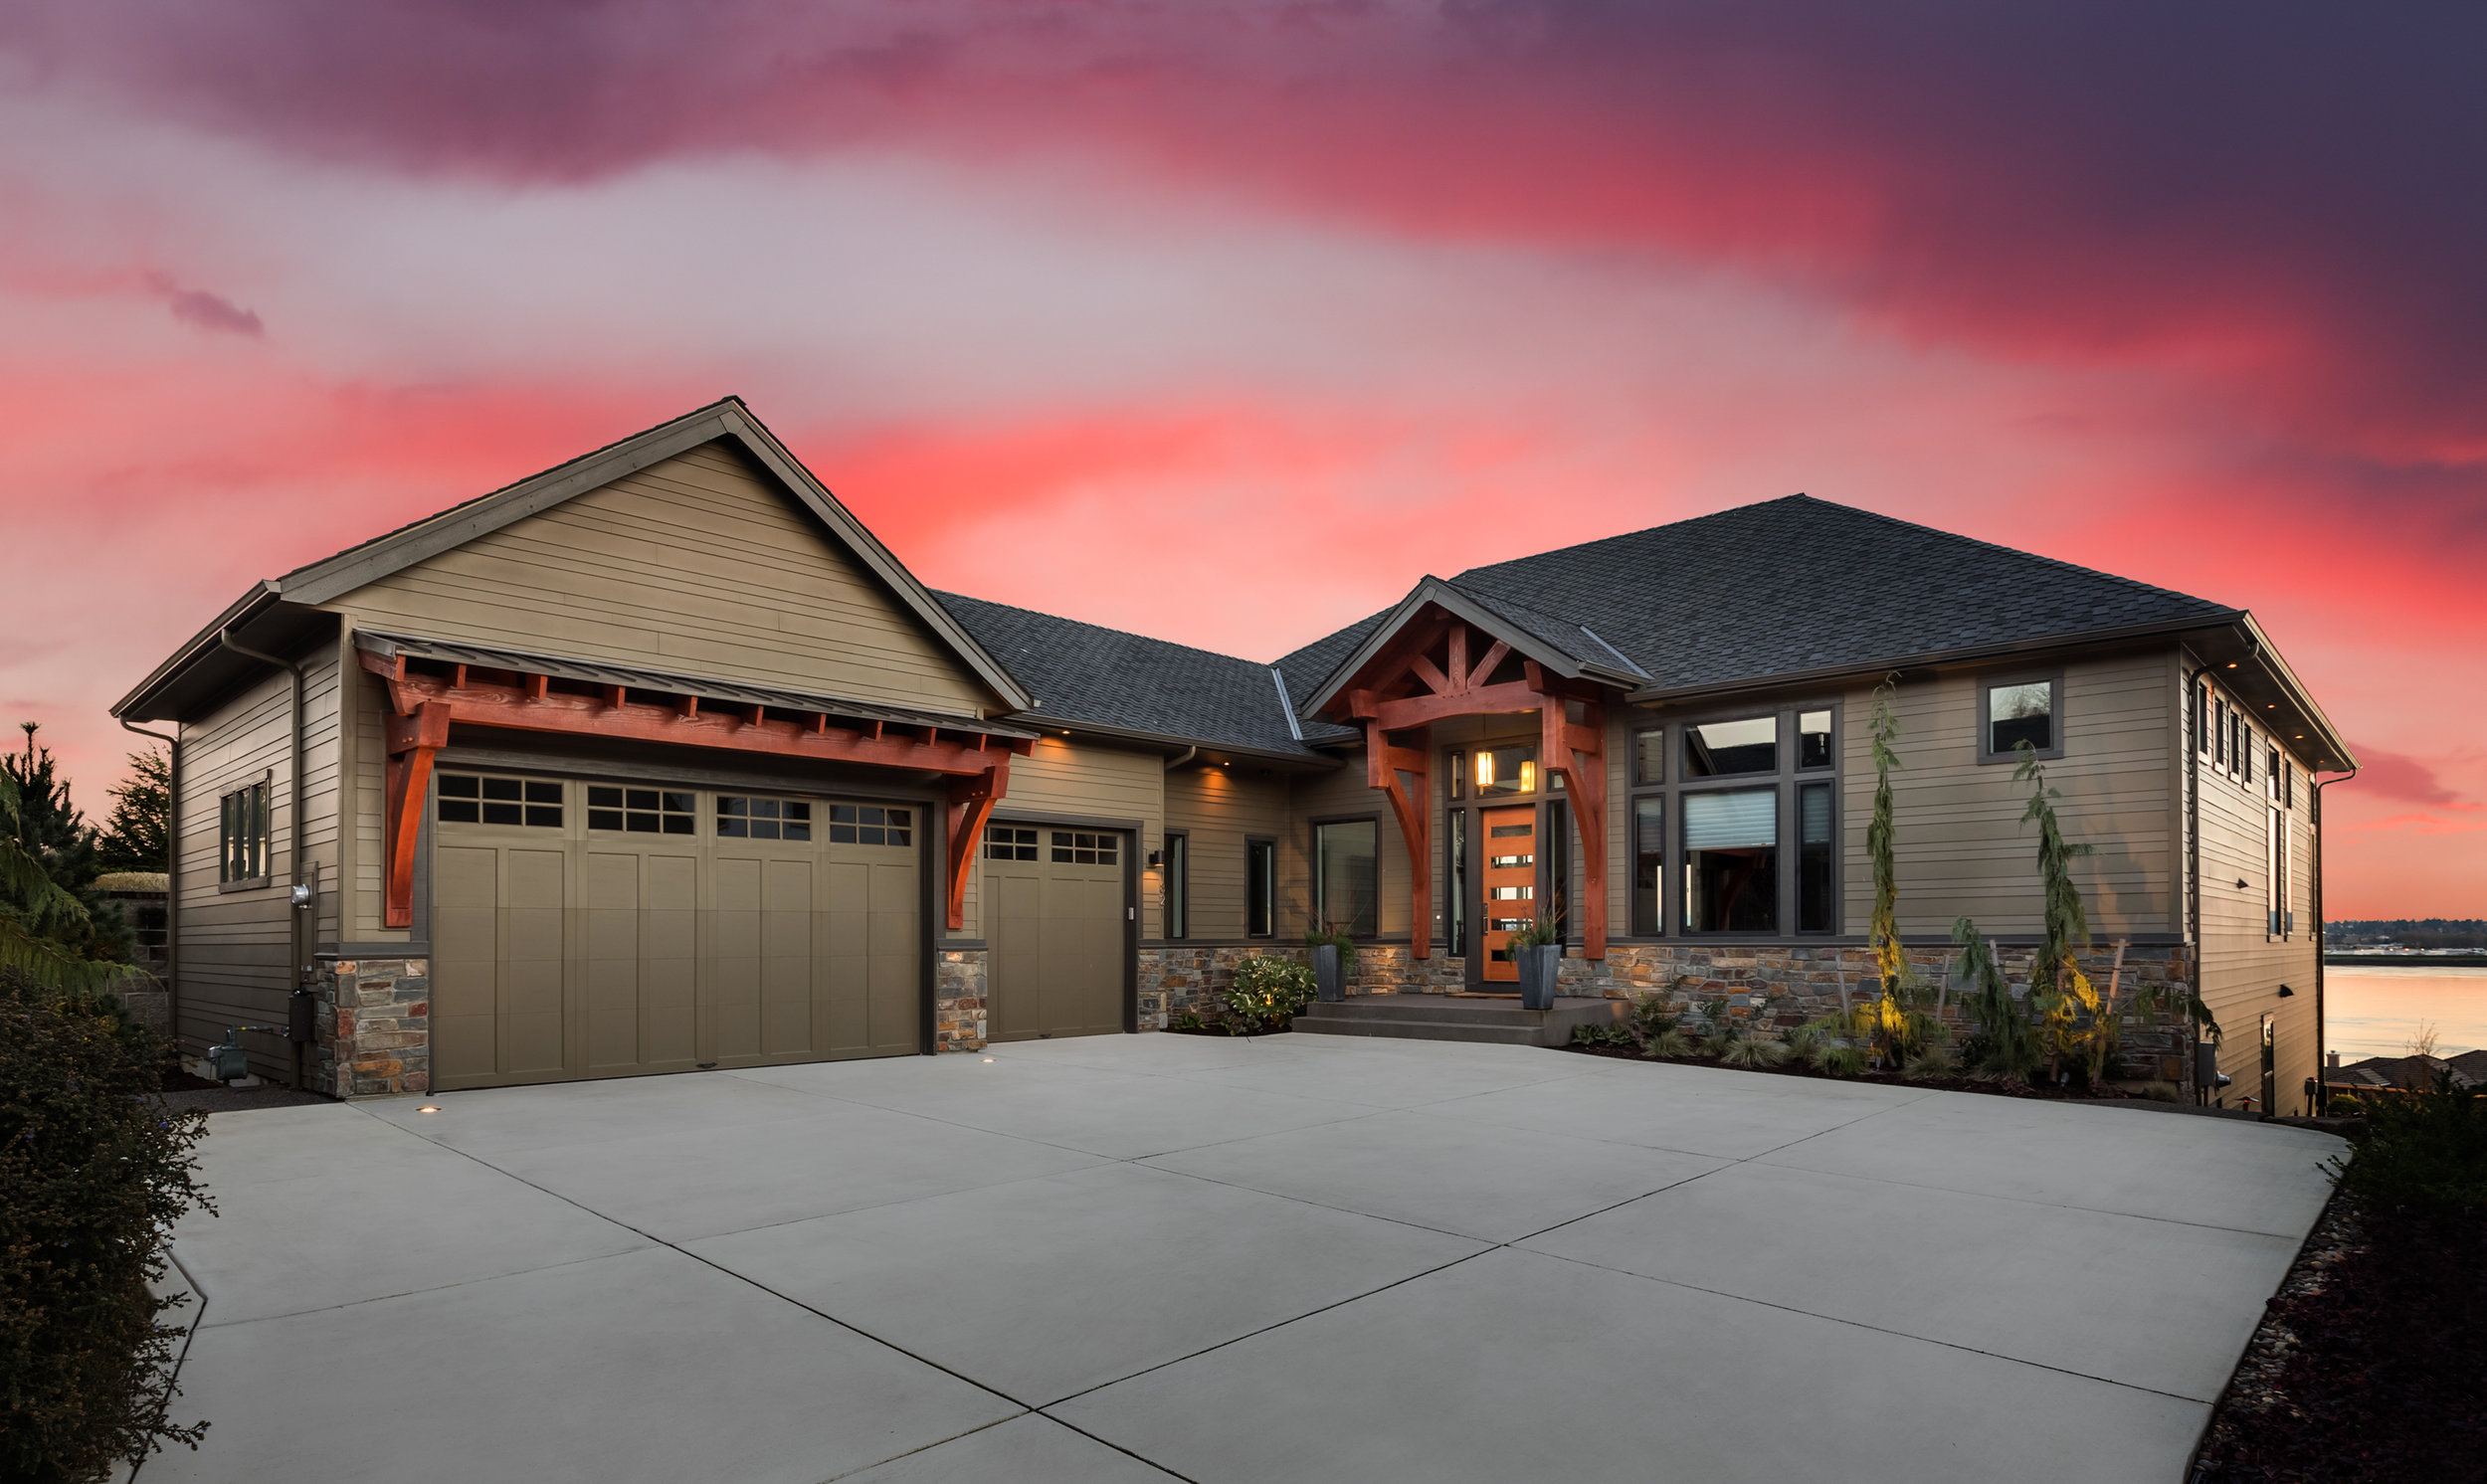 Stun your viewers right away—The Twilight add on gives you an impressive print-ready dramatic feel of your listing.